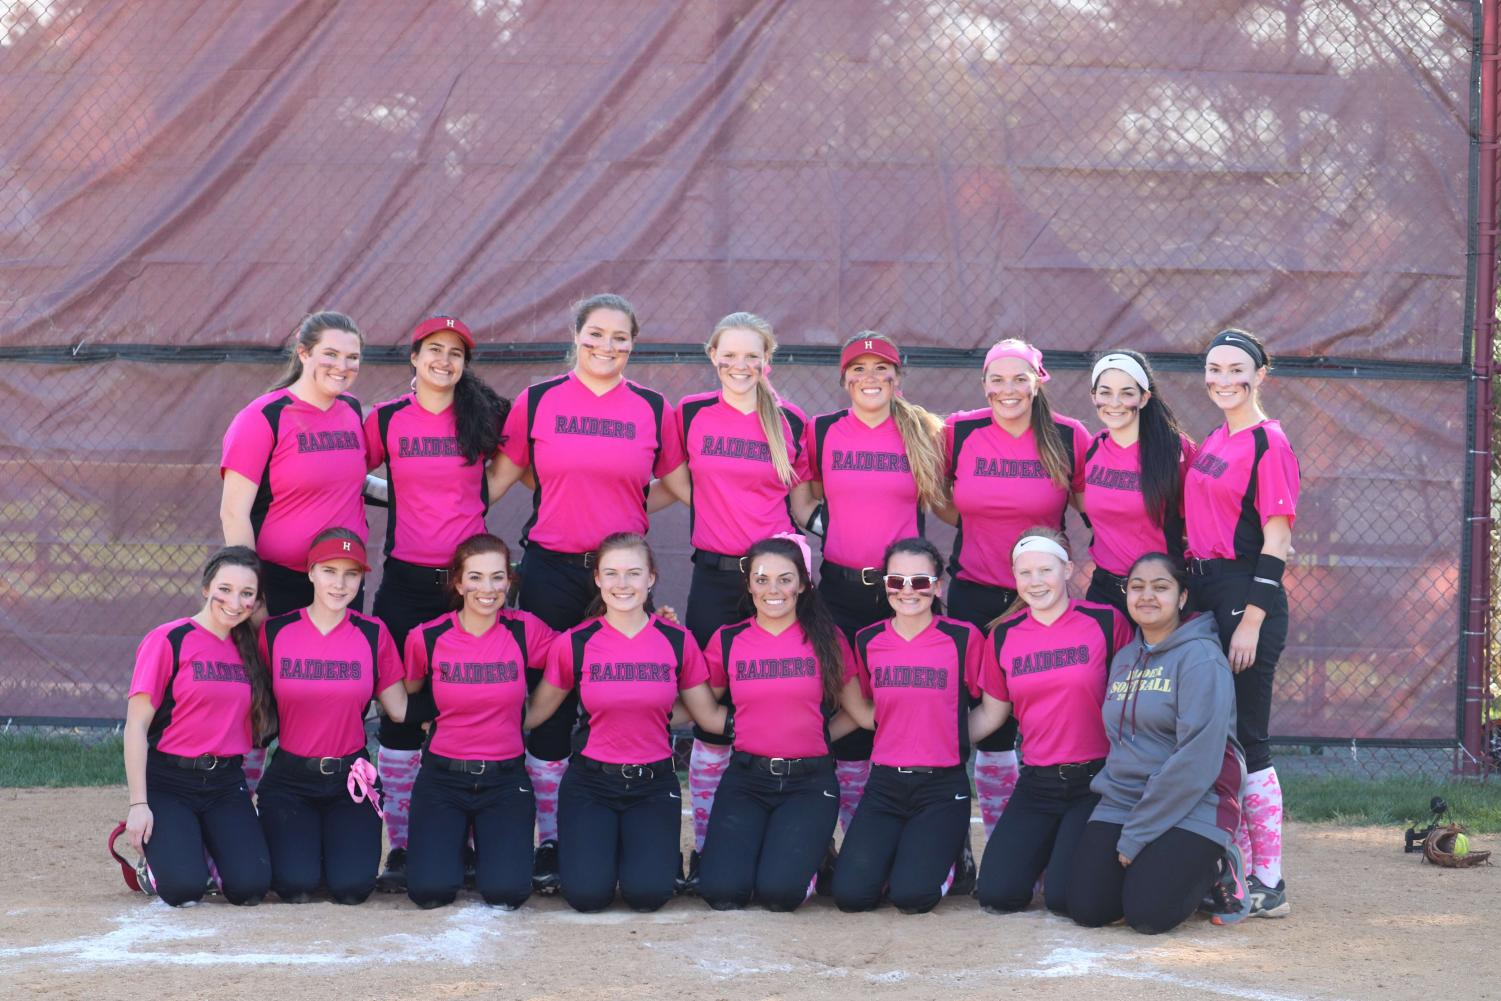 Hillsborough softball team poses before a game sporting their breast cancer awareness jerseys.